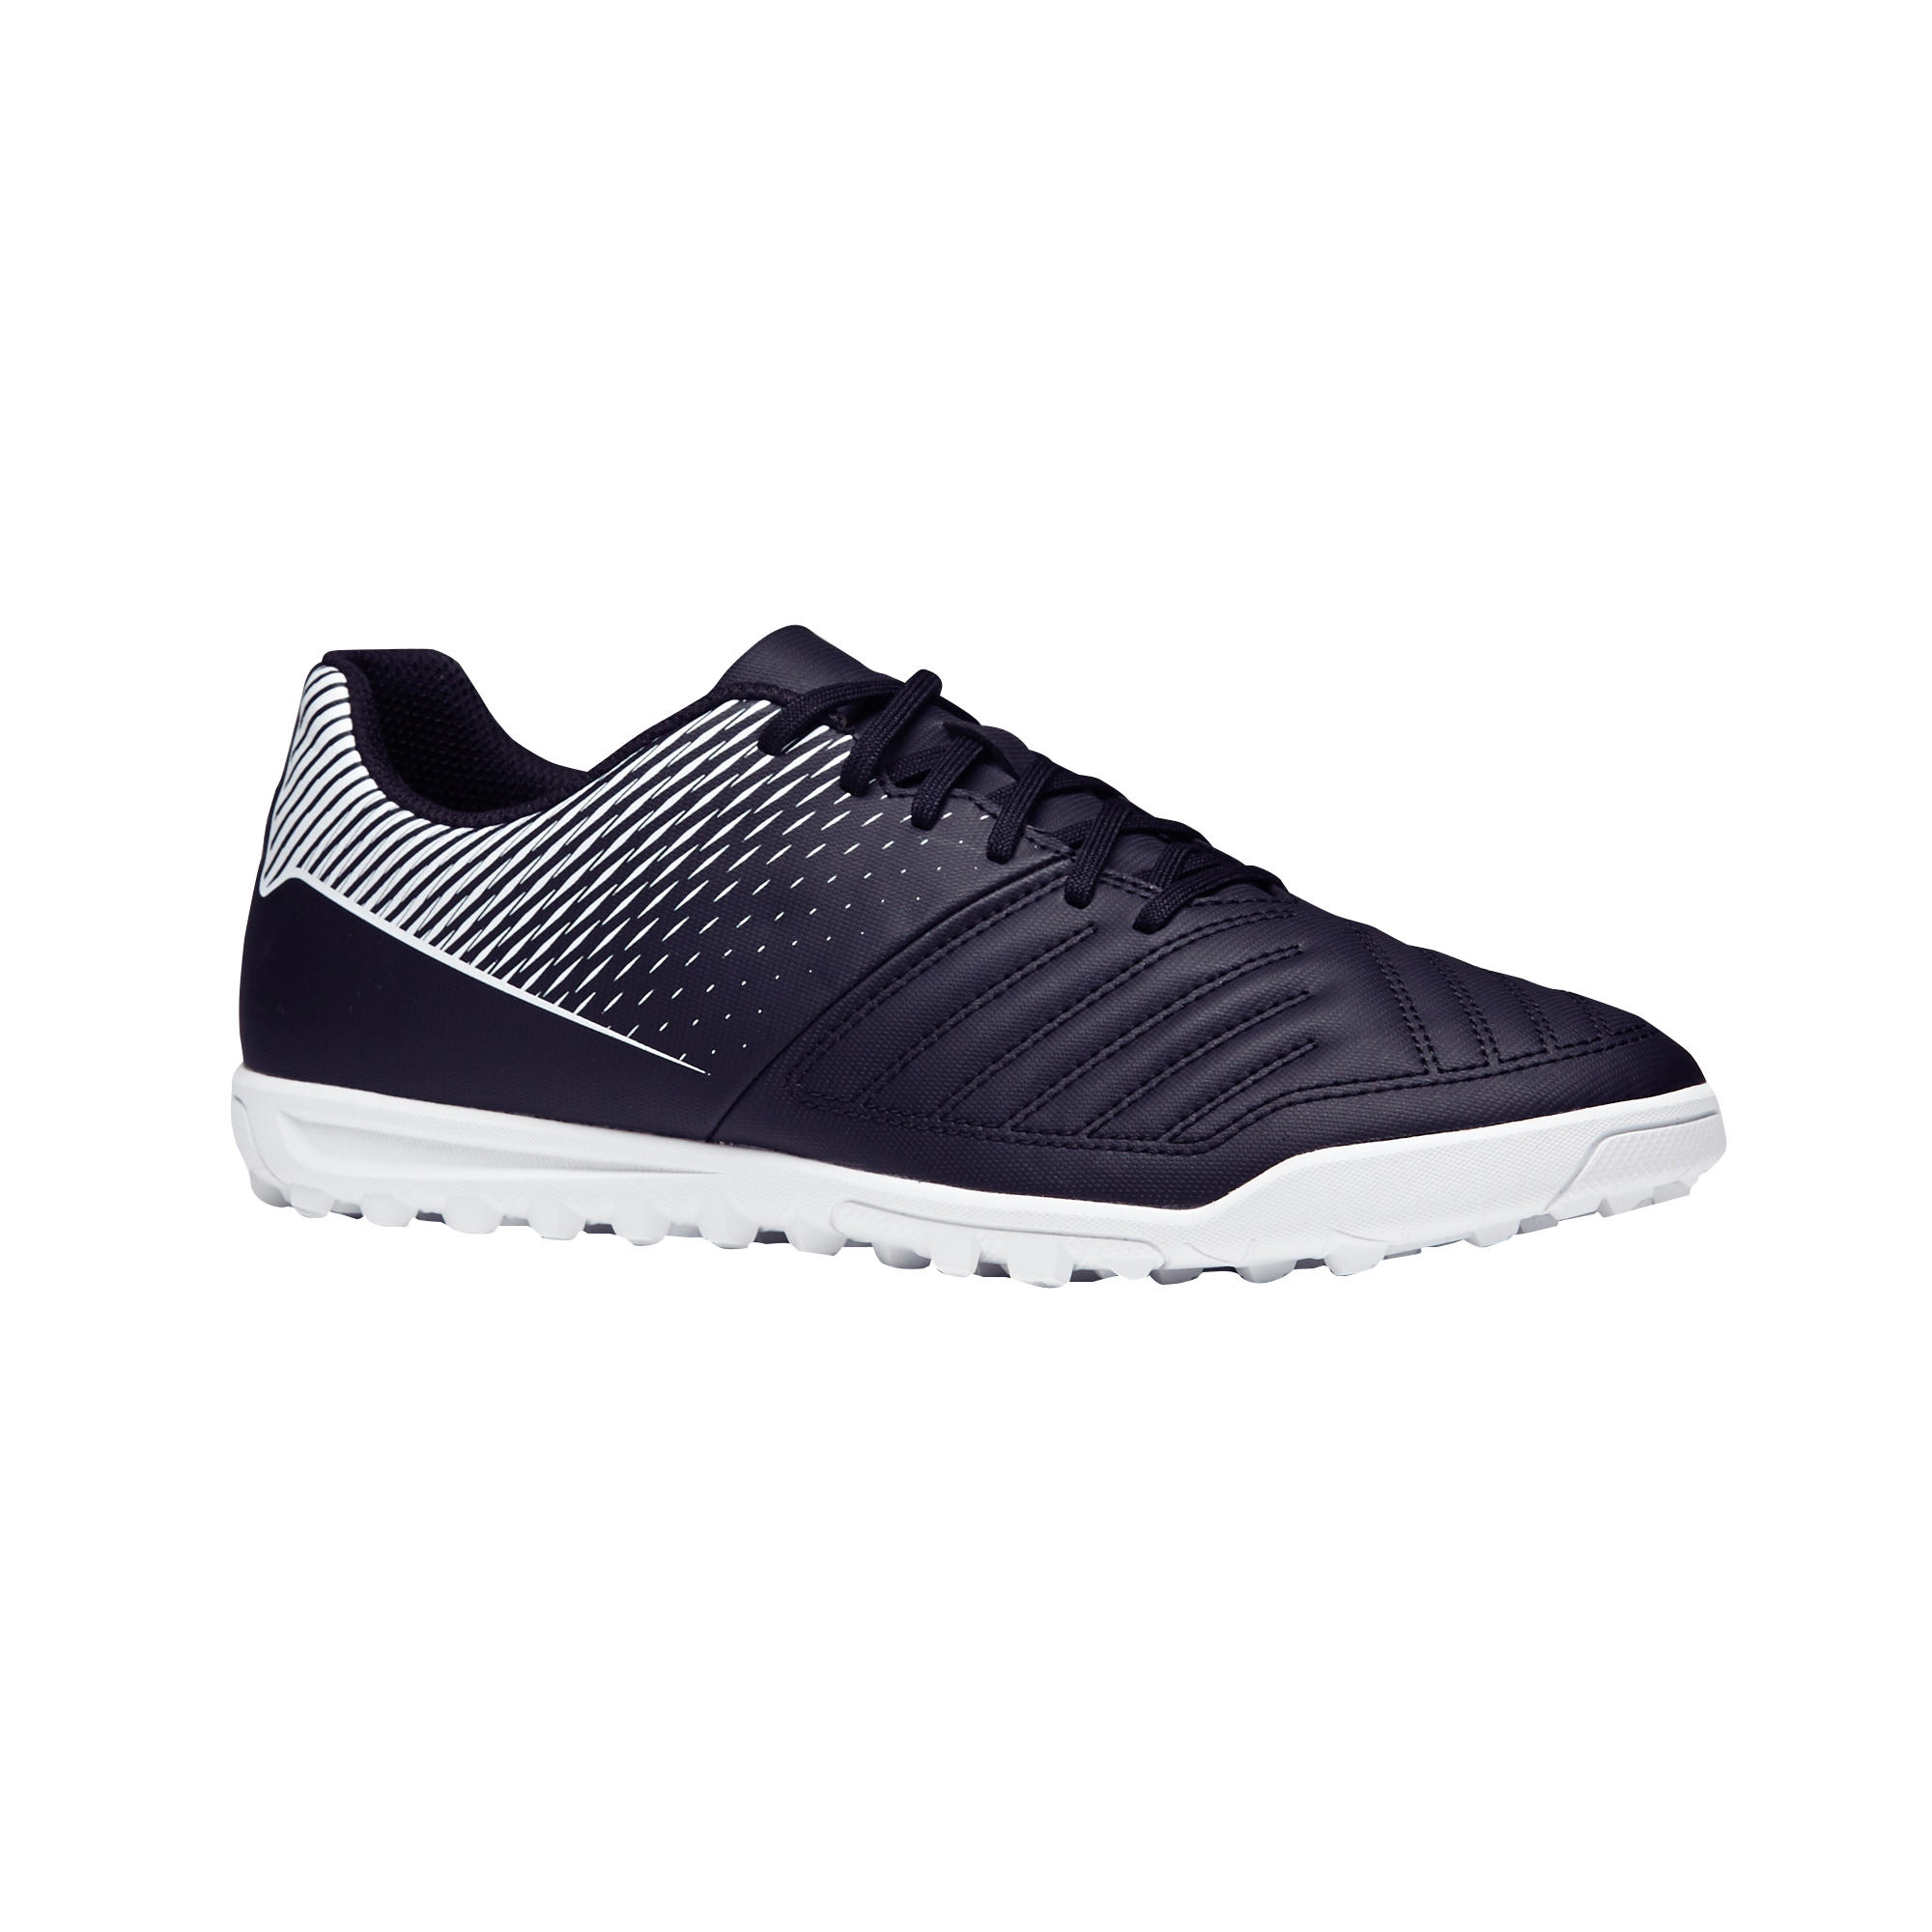 Agility 100 HG Adult Soccer Shoe for Hard Pitches - Black/White